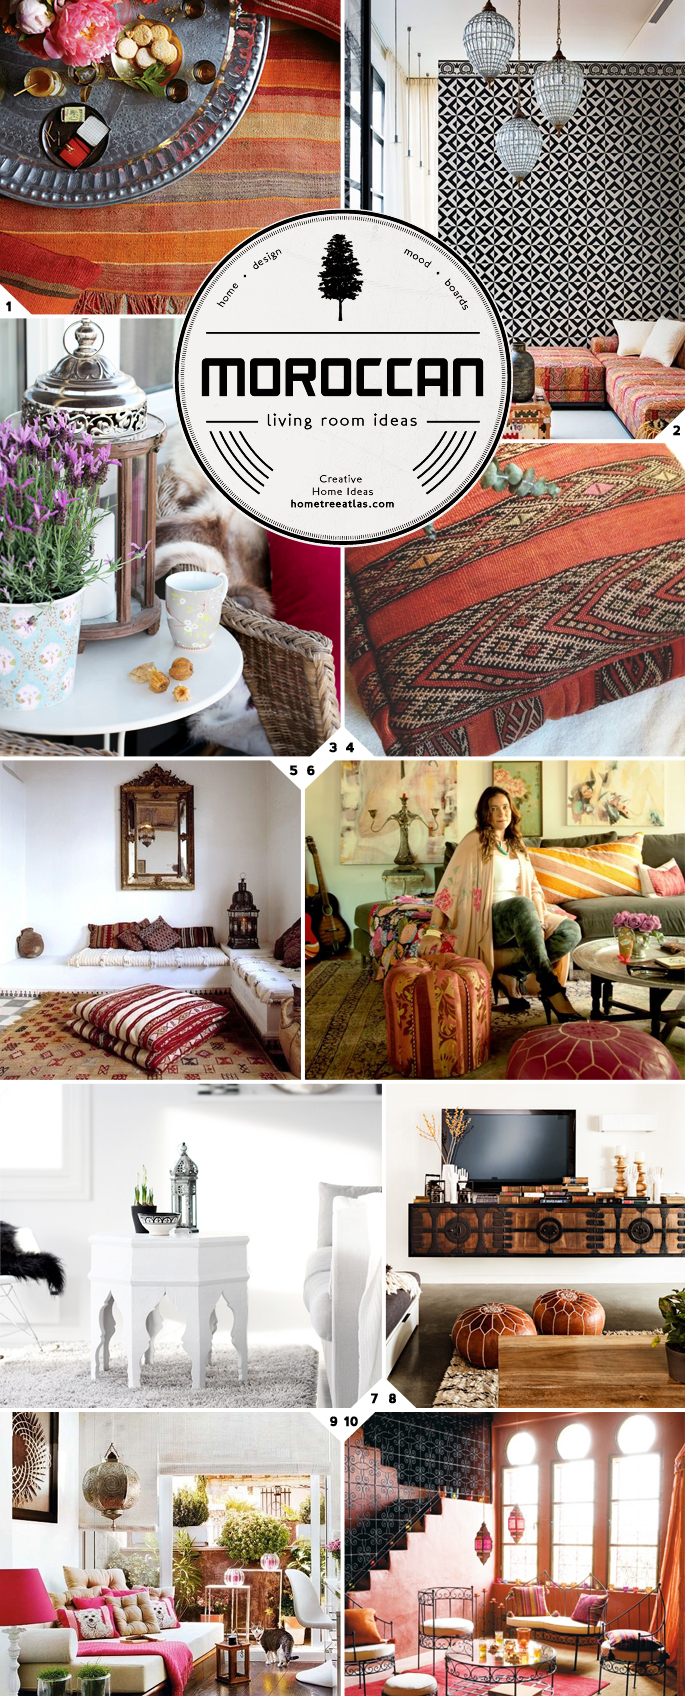 Going exotic moroccan living room style guide home tree - Moroccan themed living room ideas ...